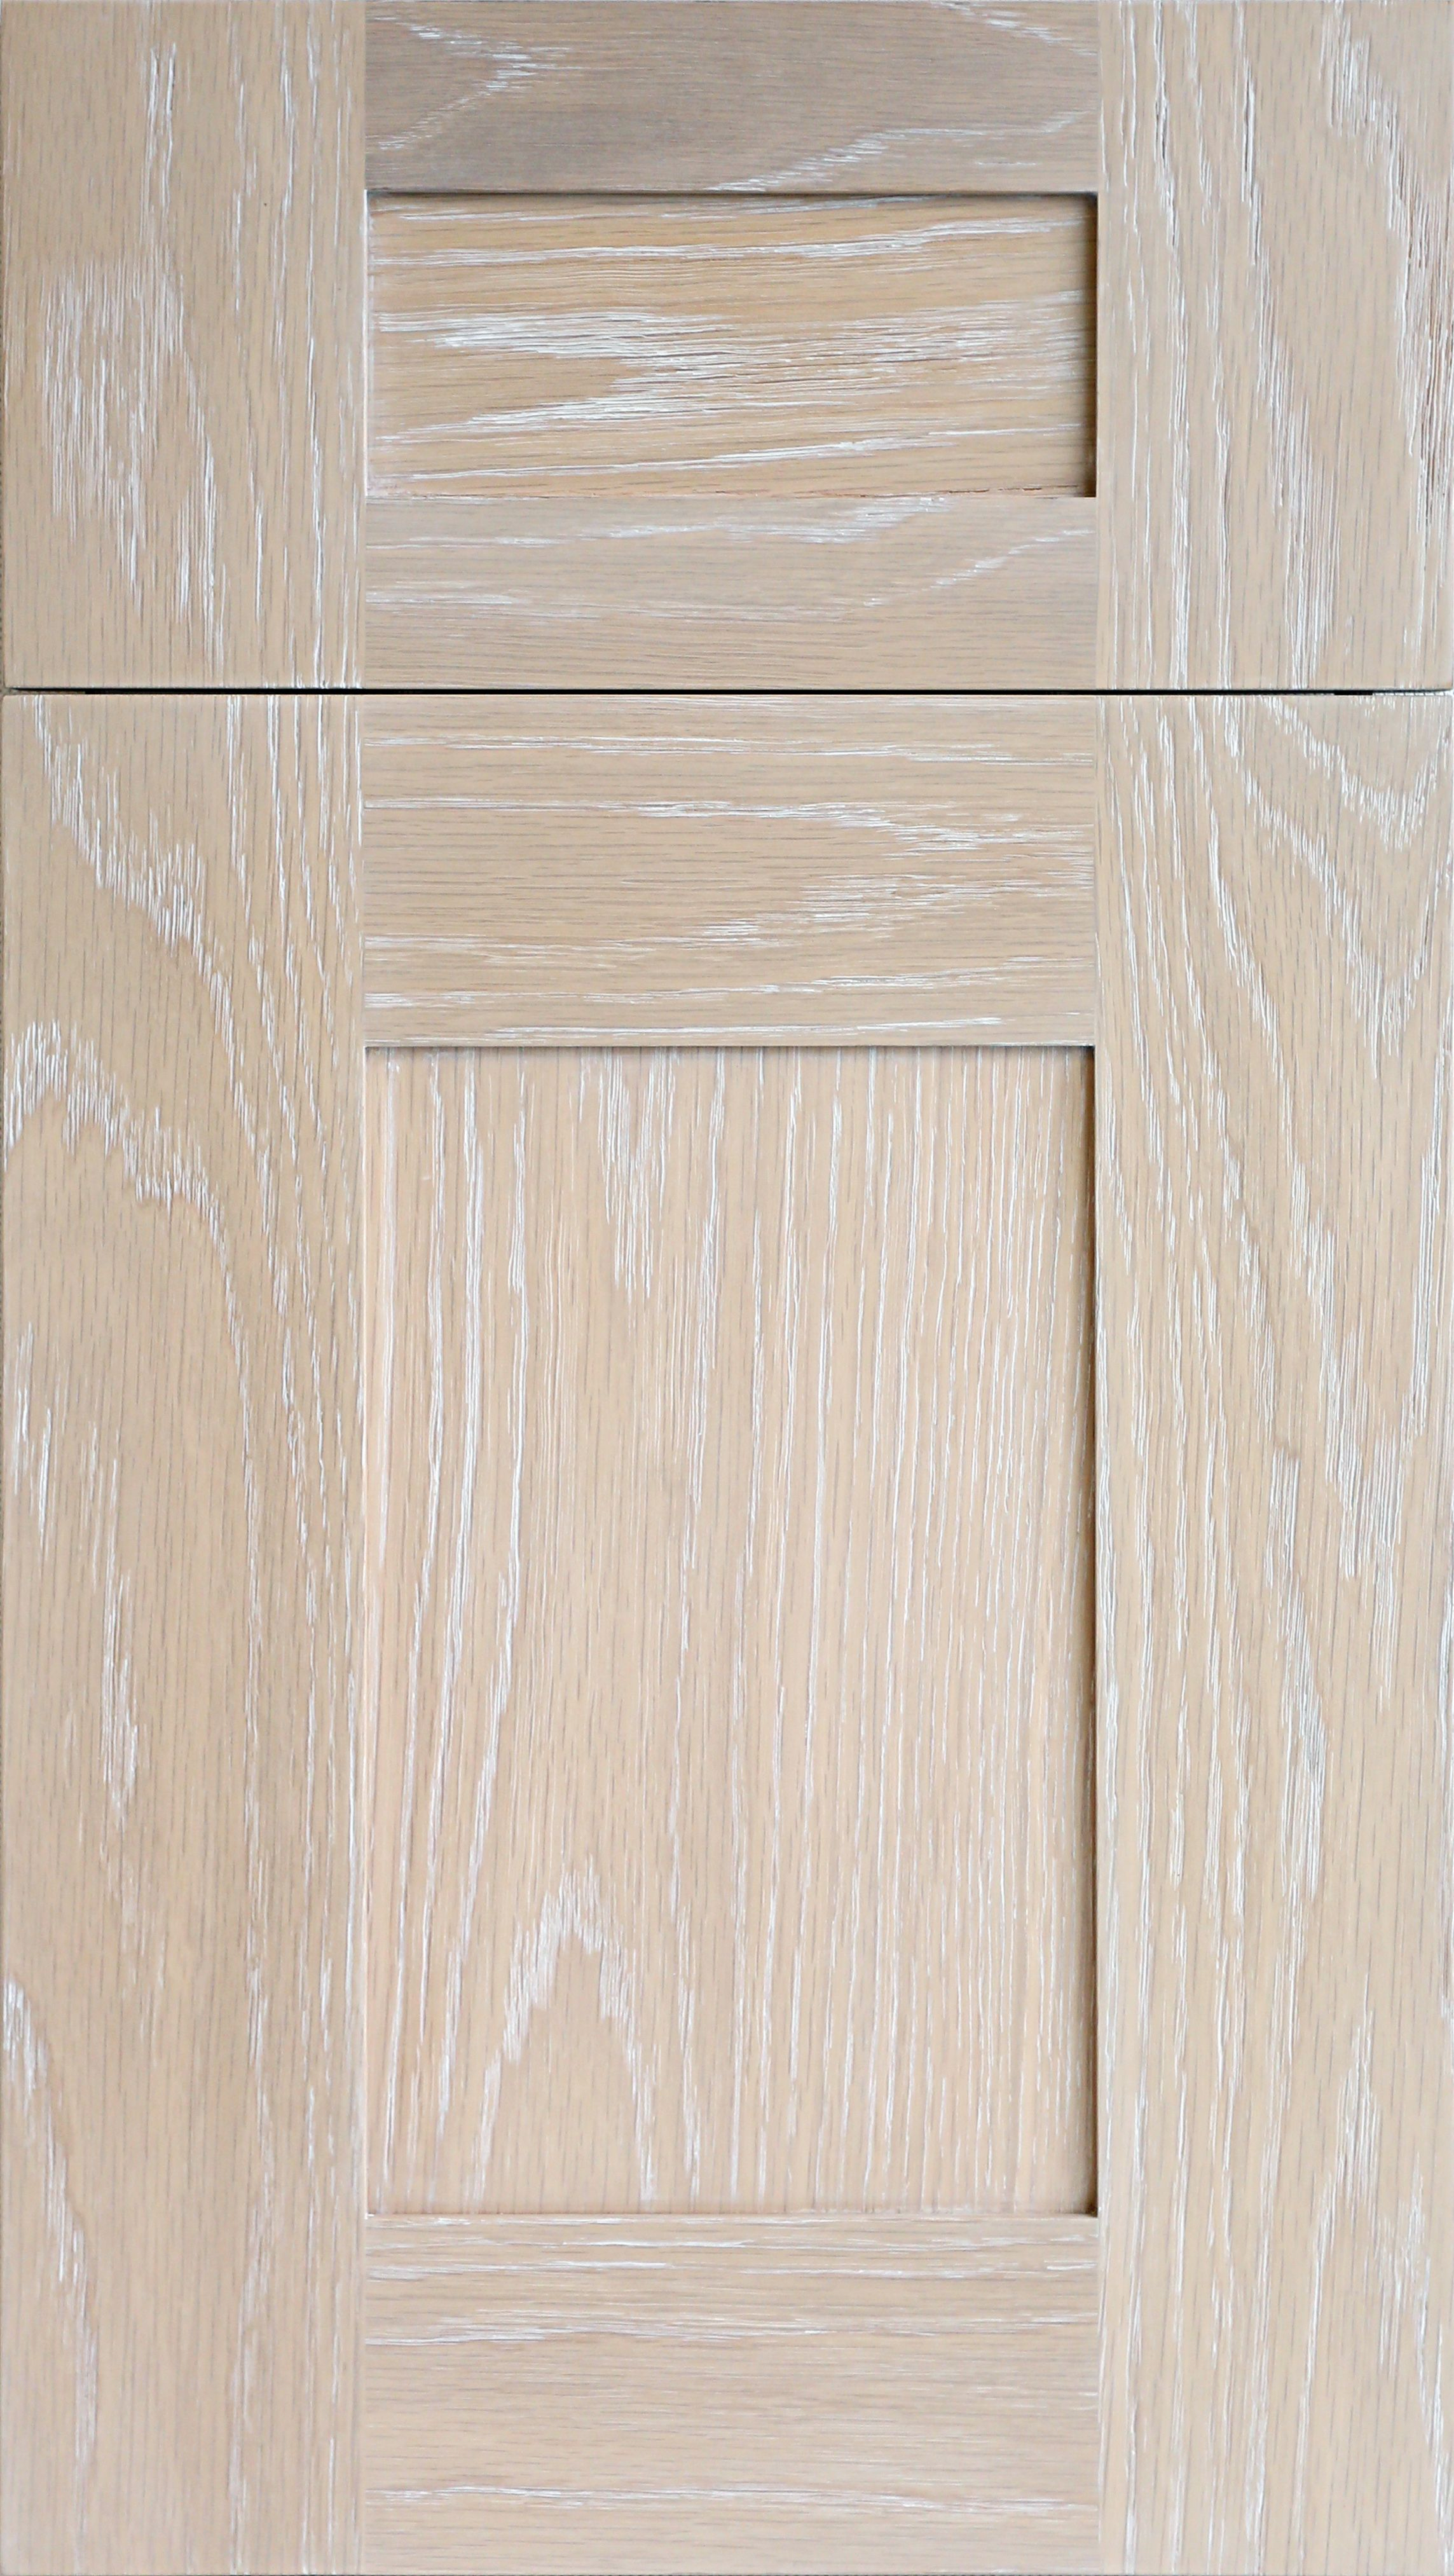 Meridian WR door in plainsawn white oak in driftwood stain with wire ...